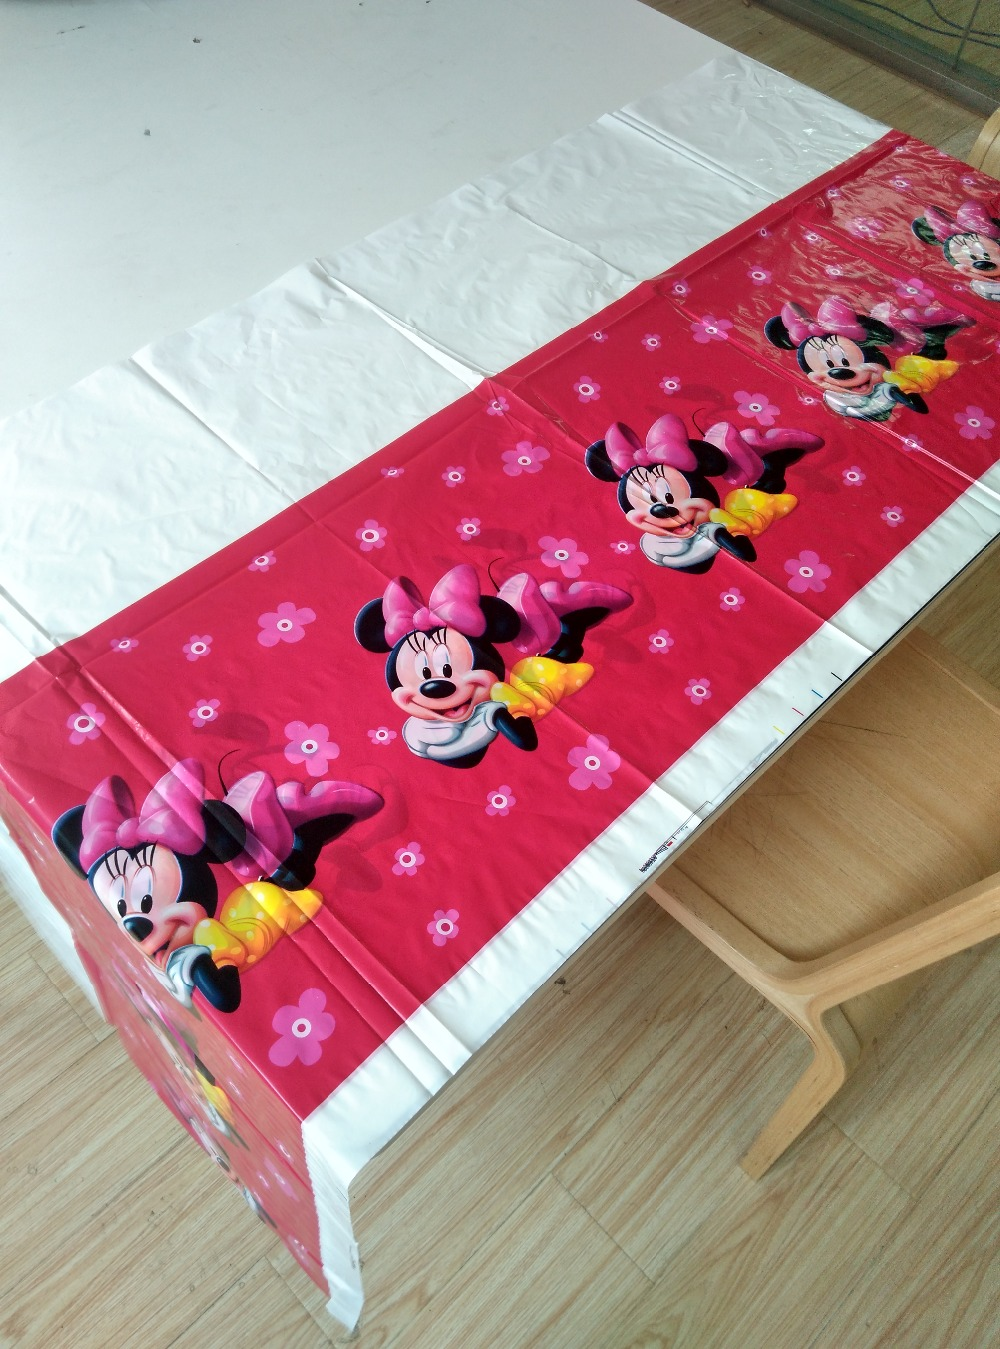 Red minnie mouse party supplies tablecloth favor kids girls birthday tablecloths party festival decoration 108cm*180cm 02(China (Mainland))